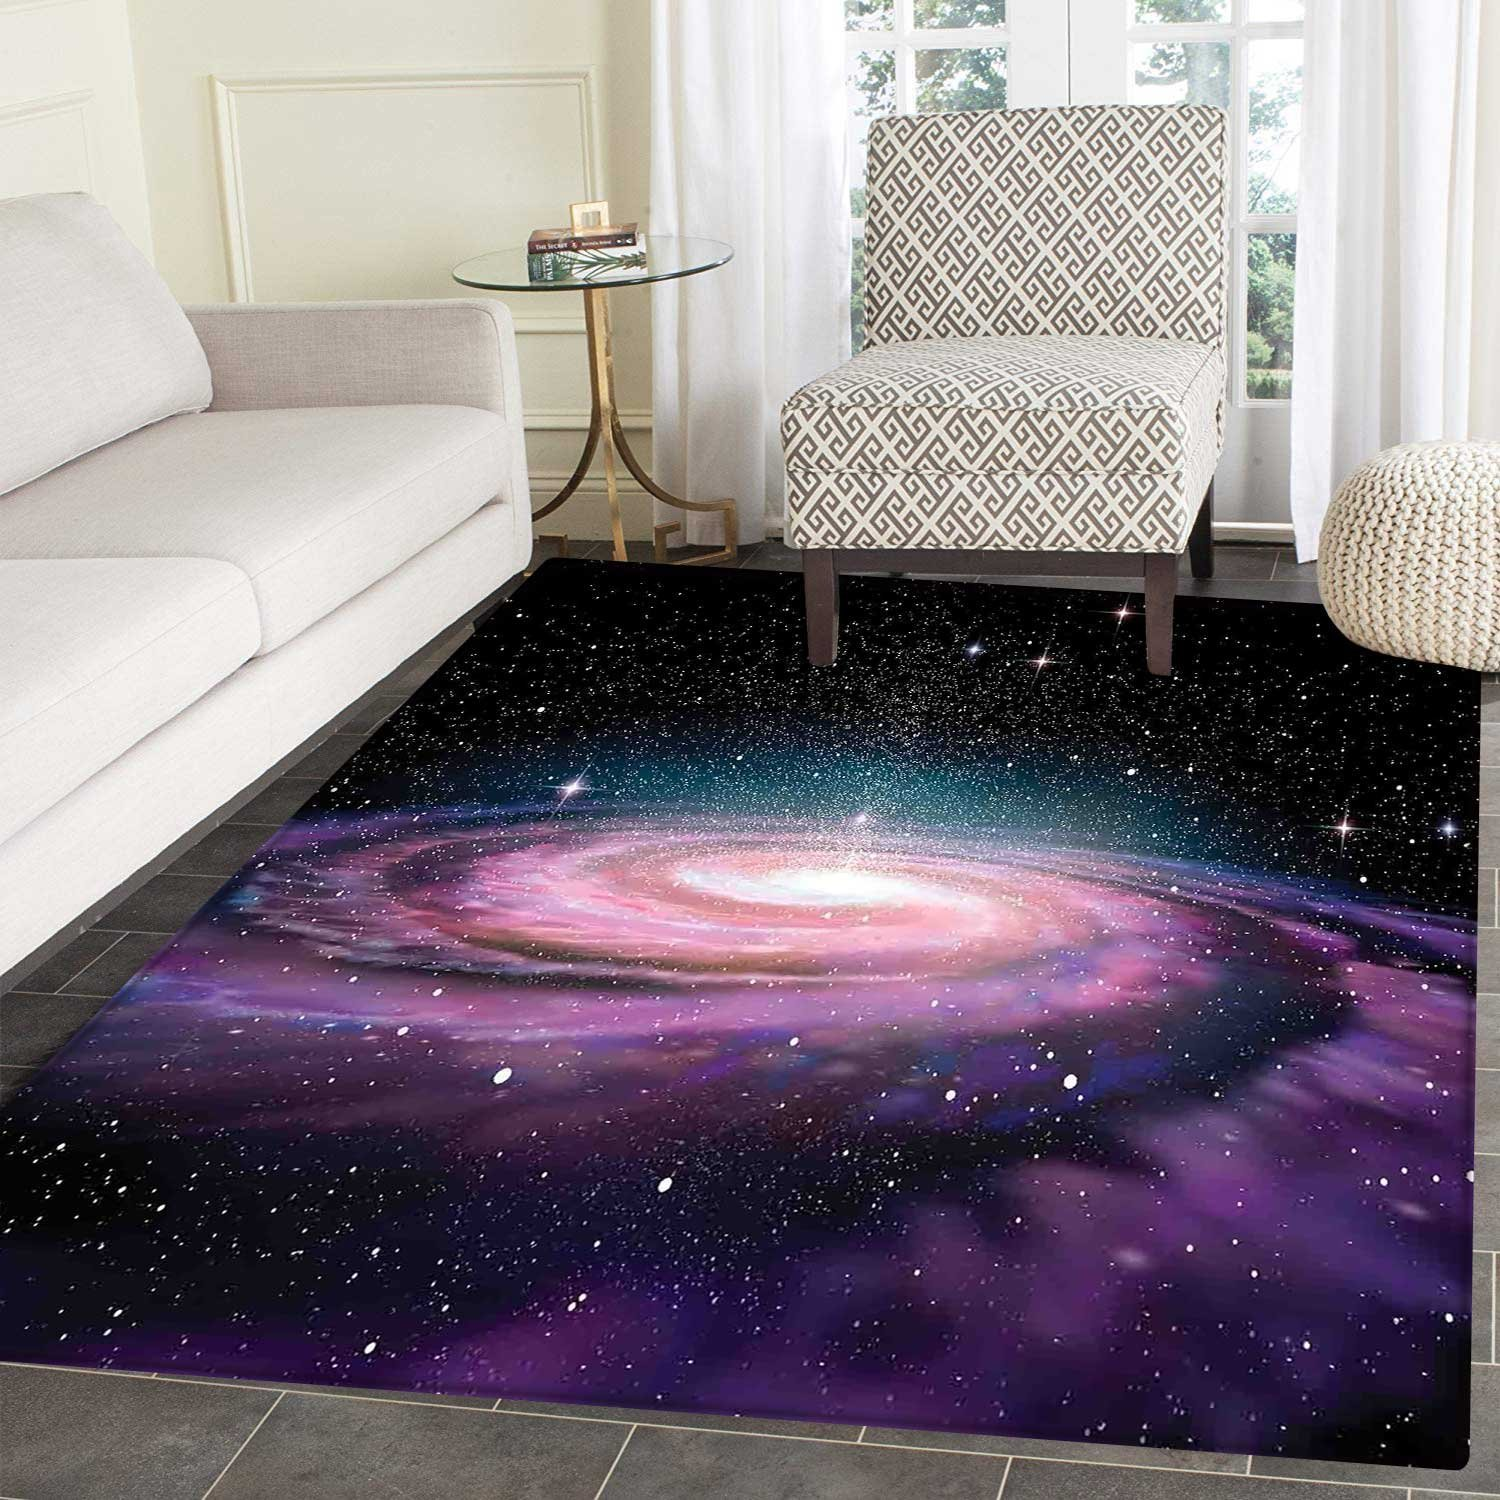 Galaxy Mat Kid Carpet Spiral Galaxy in Outer Space Andromeda Nebula Star Dust Universe Astronomy Print Home Decor Foor Carpe 3'x4' Mauve Black